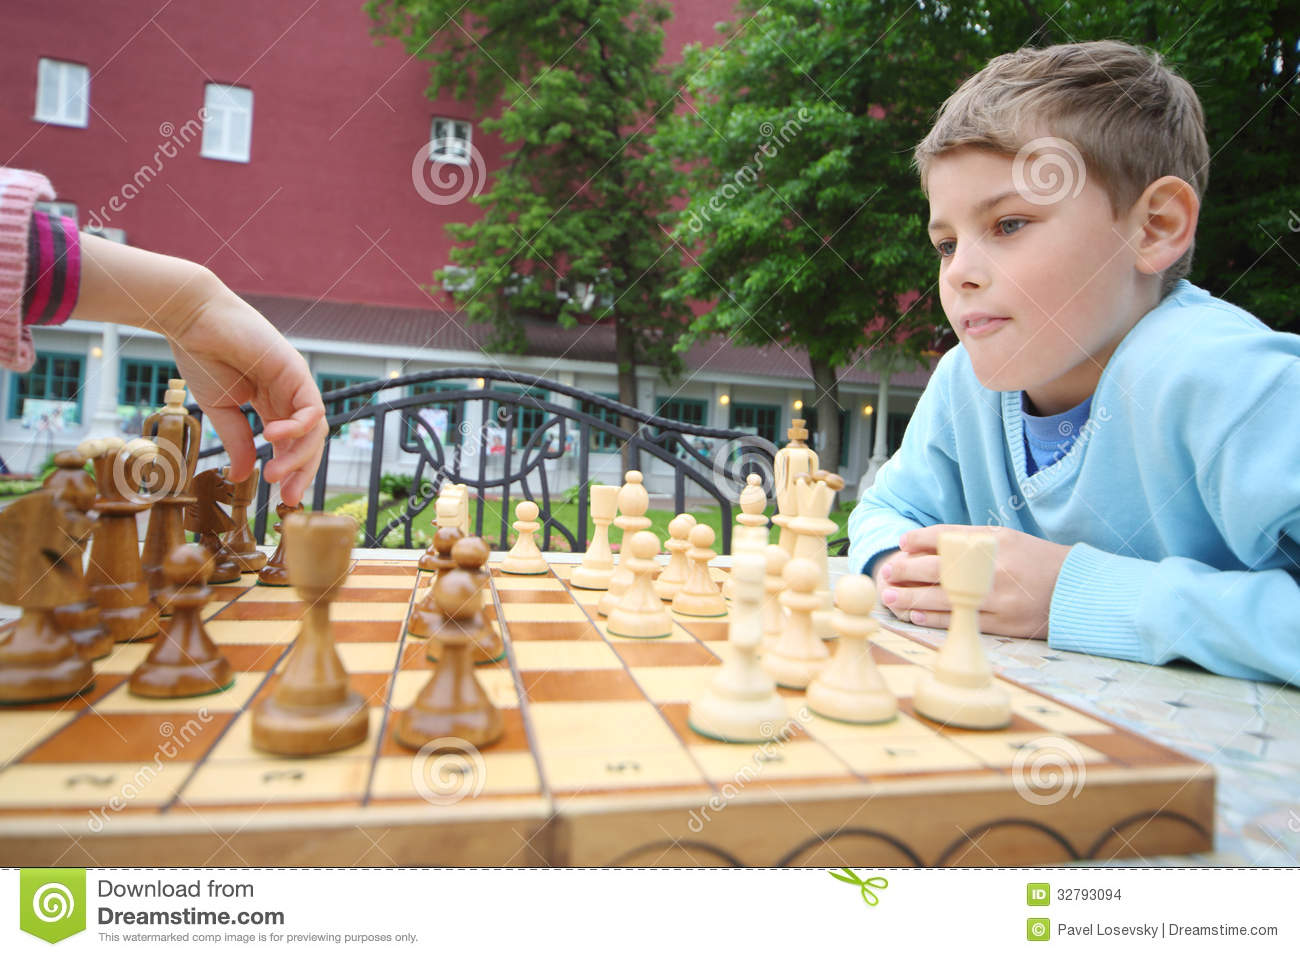 Boy looks like hand of girl moves chess piece on chessboard